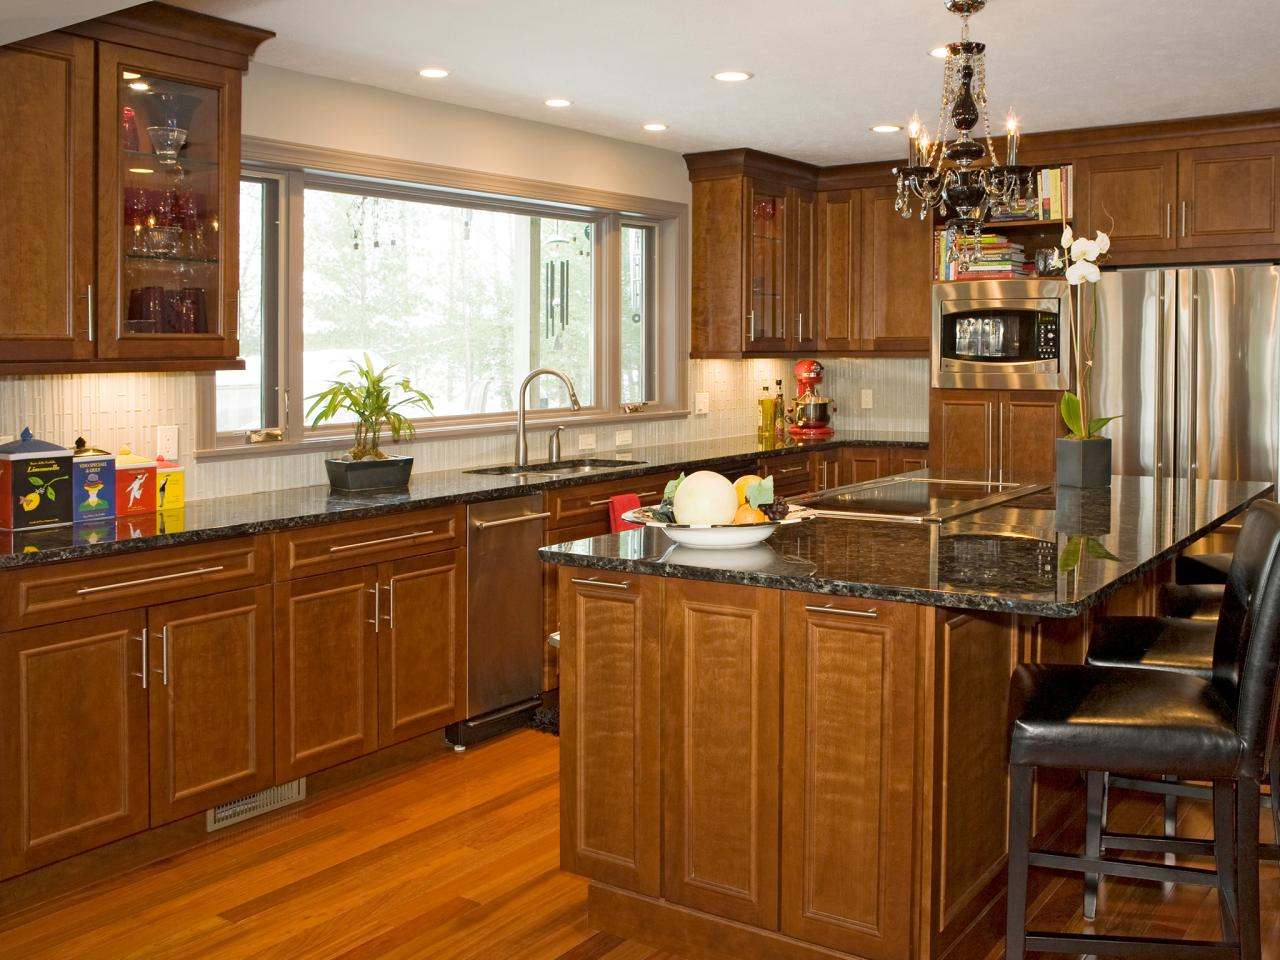 Pictures of Dark Wood Kitchen Cabinets With Patterned Backsplash kitchen cabinet design ideas